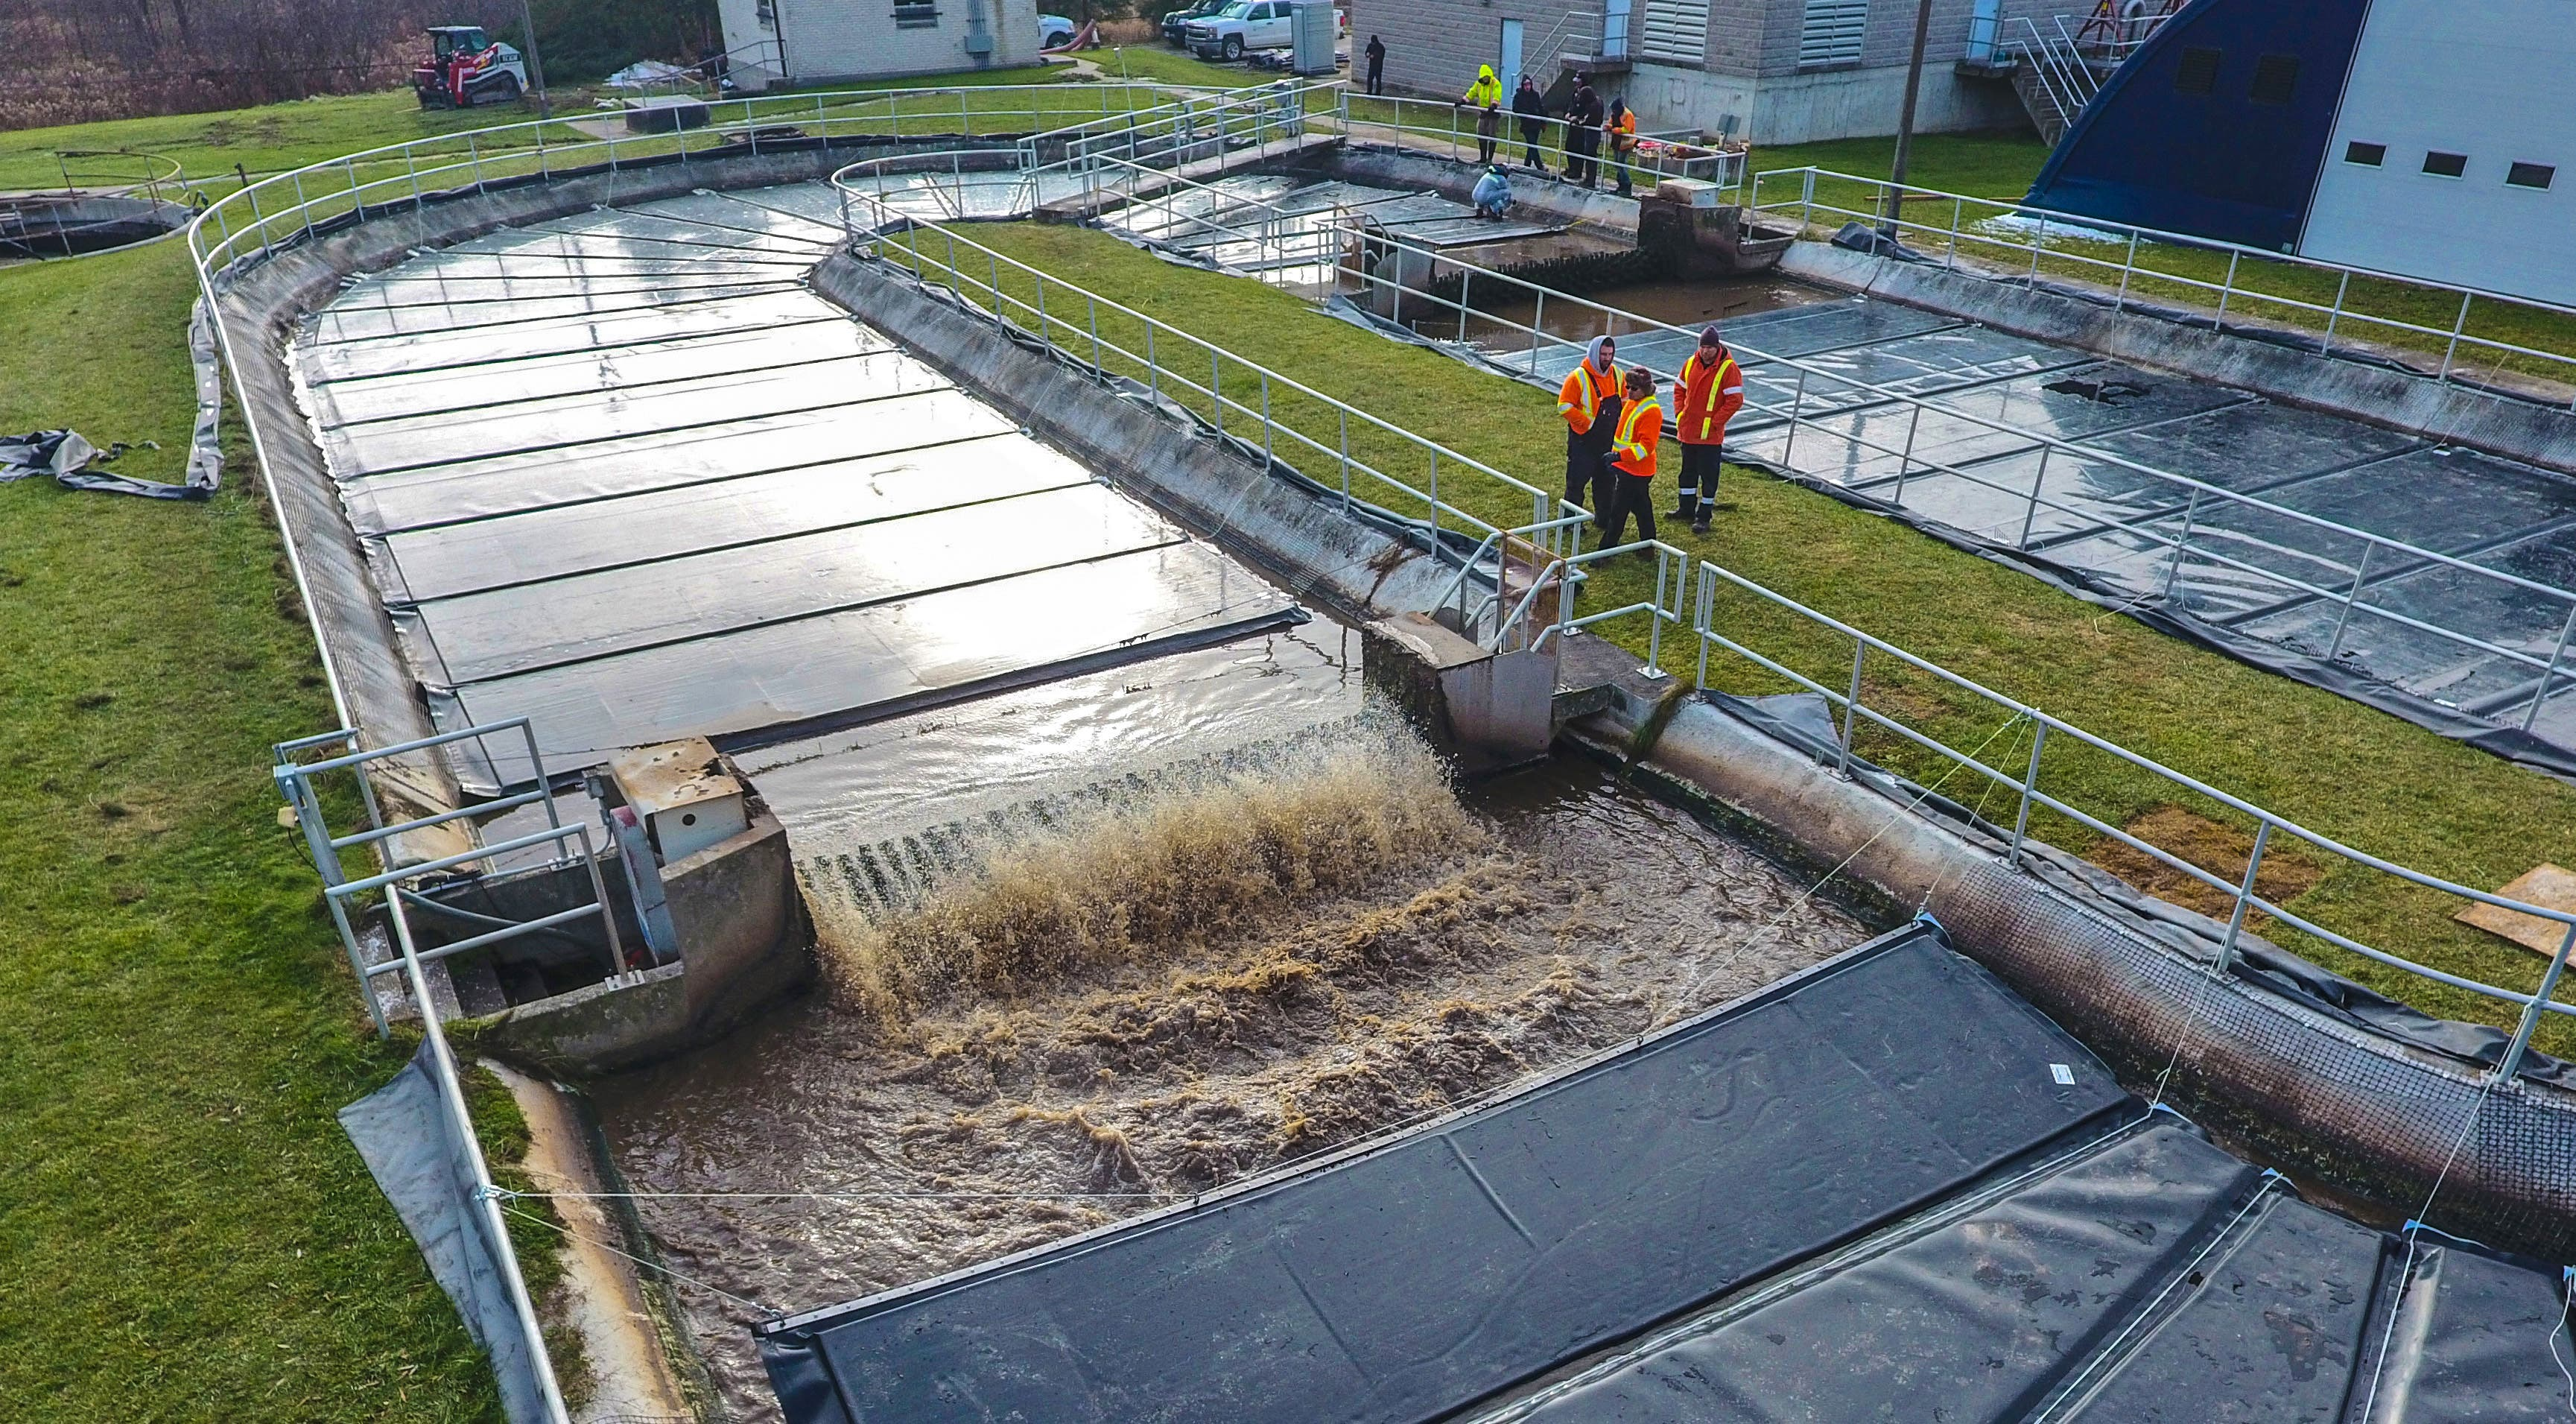 Wastewater being treated at a facility